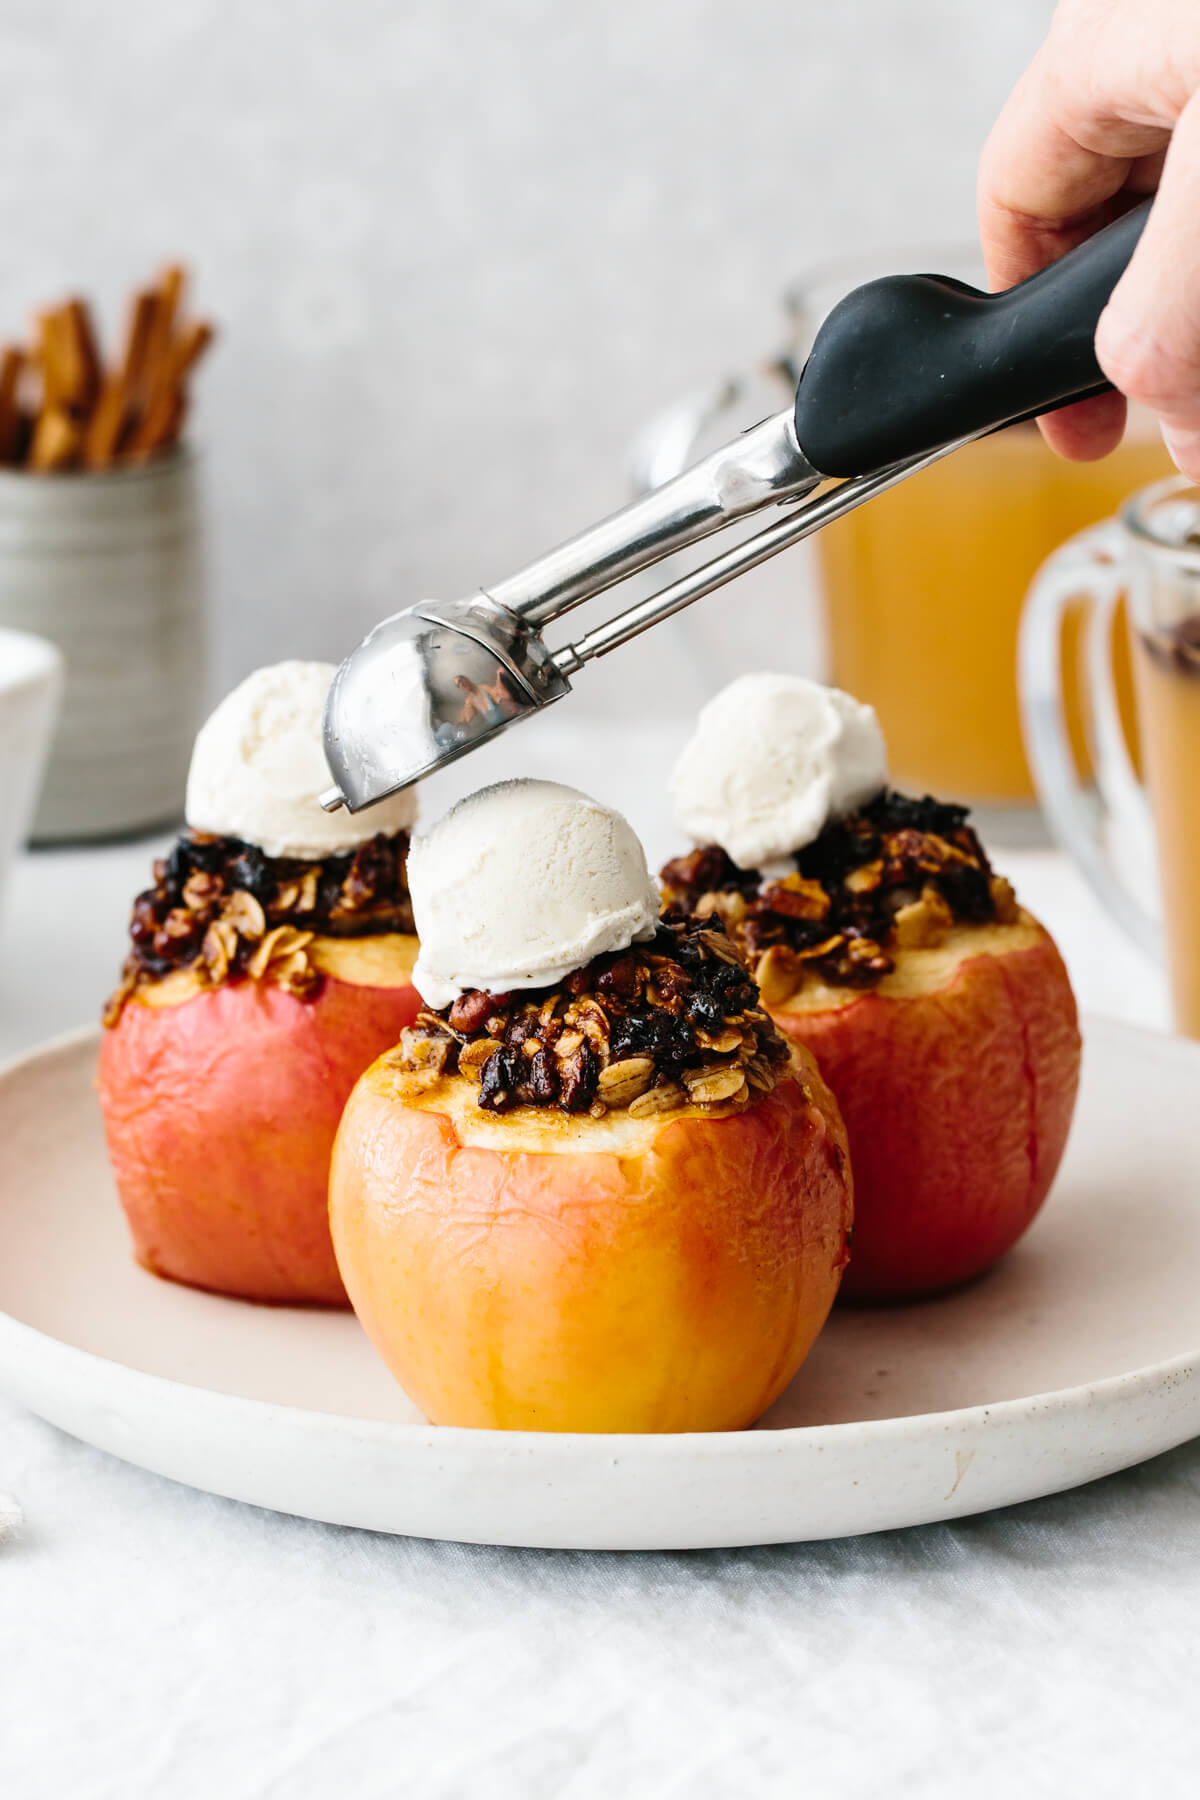 Topping the baked apples with a scoop of ice cream.